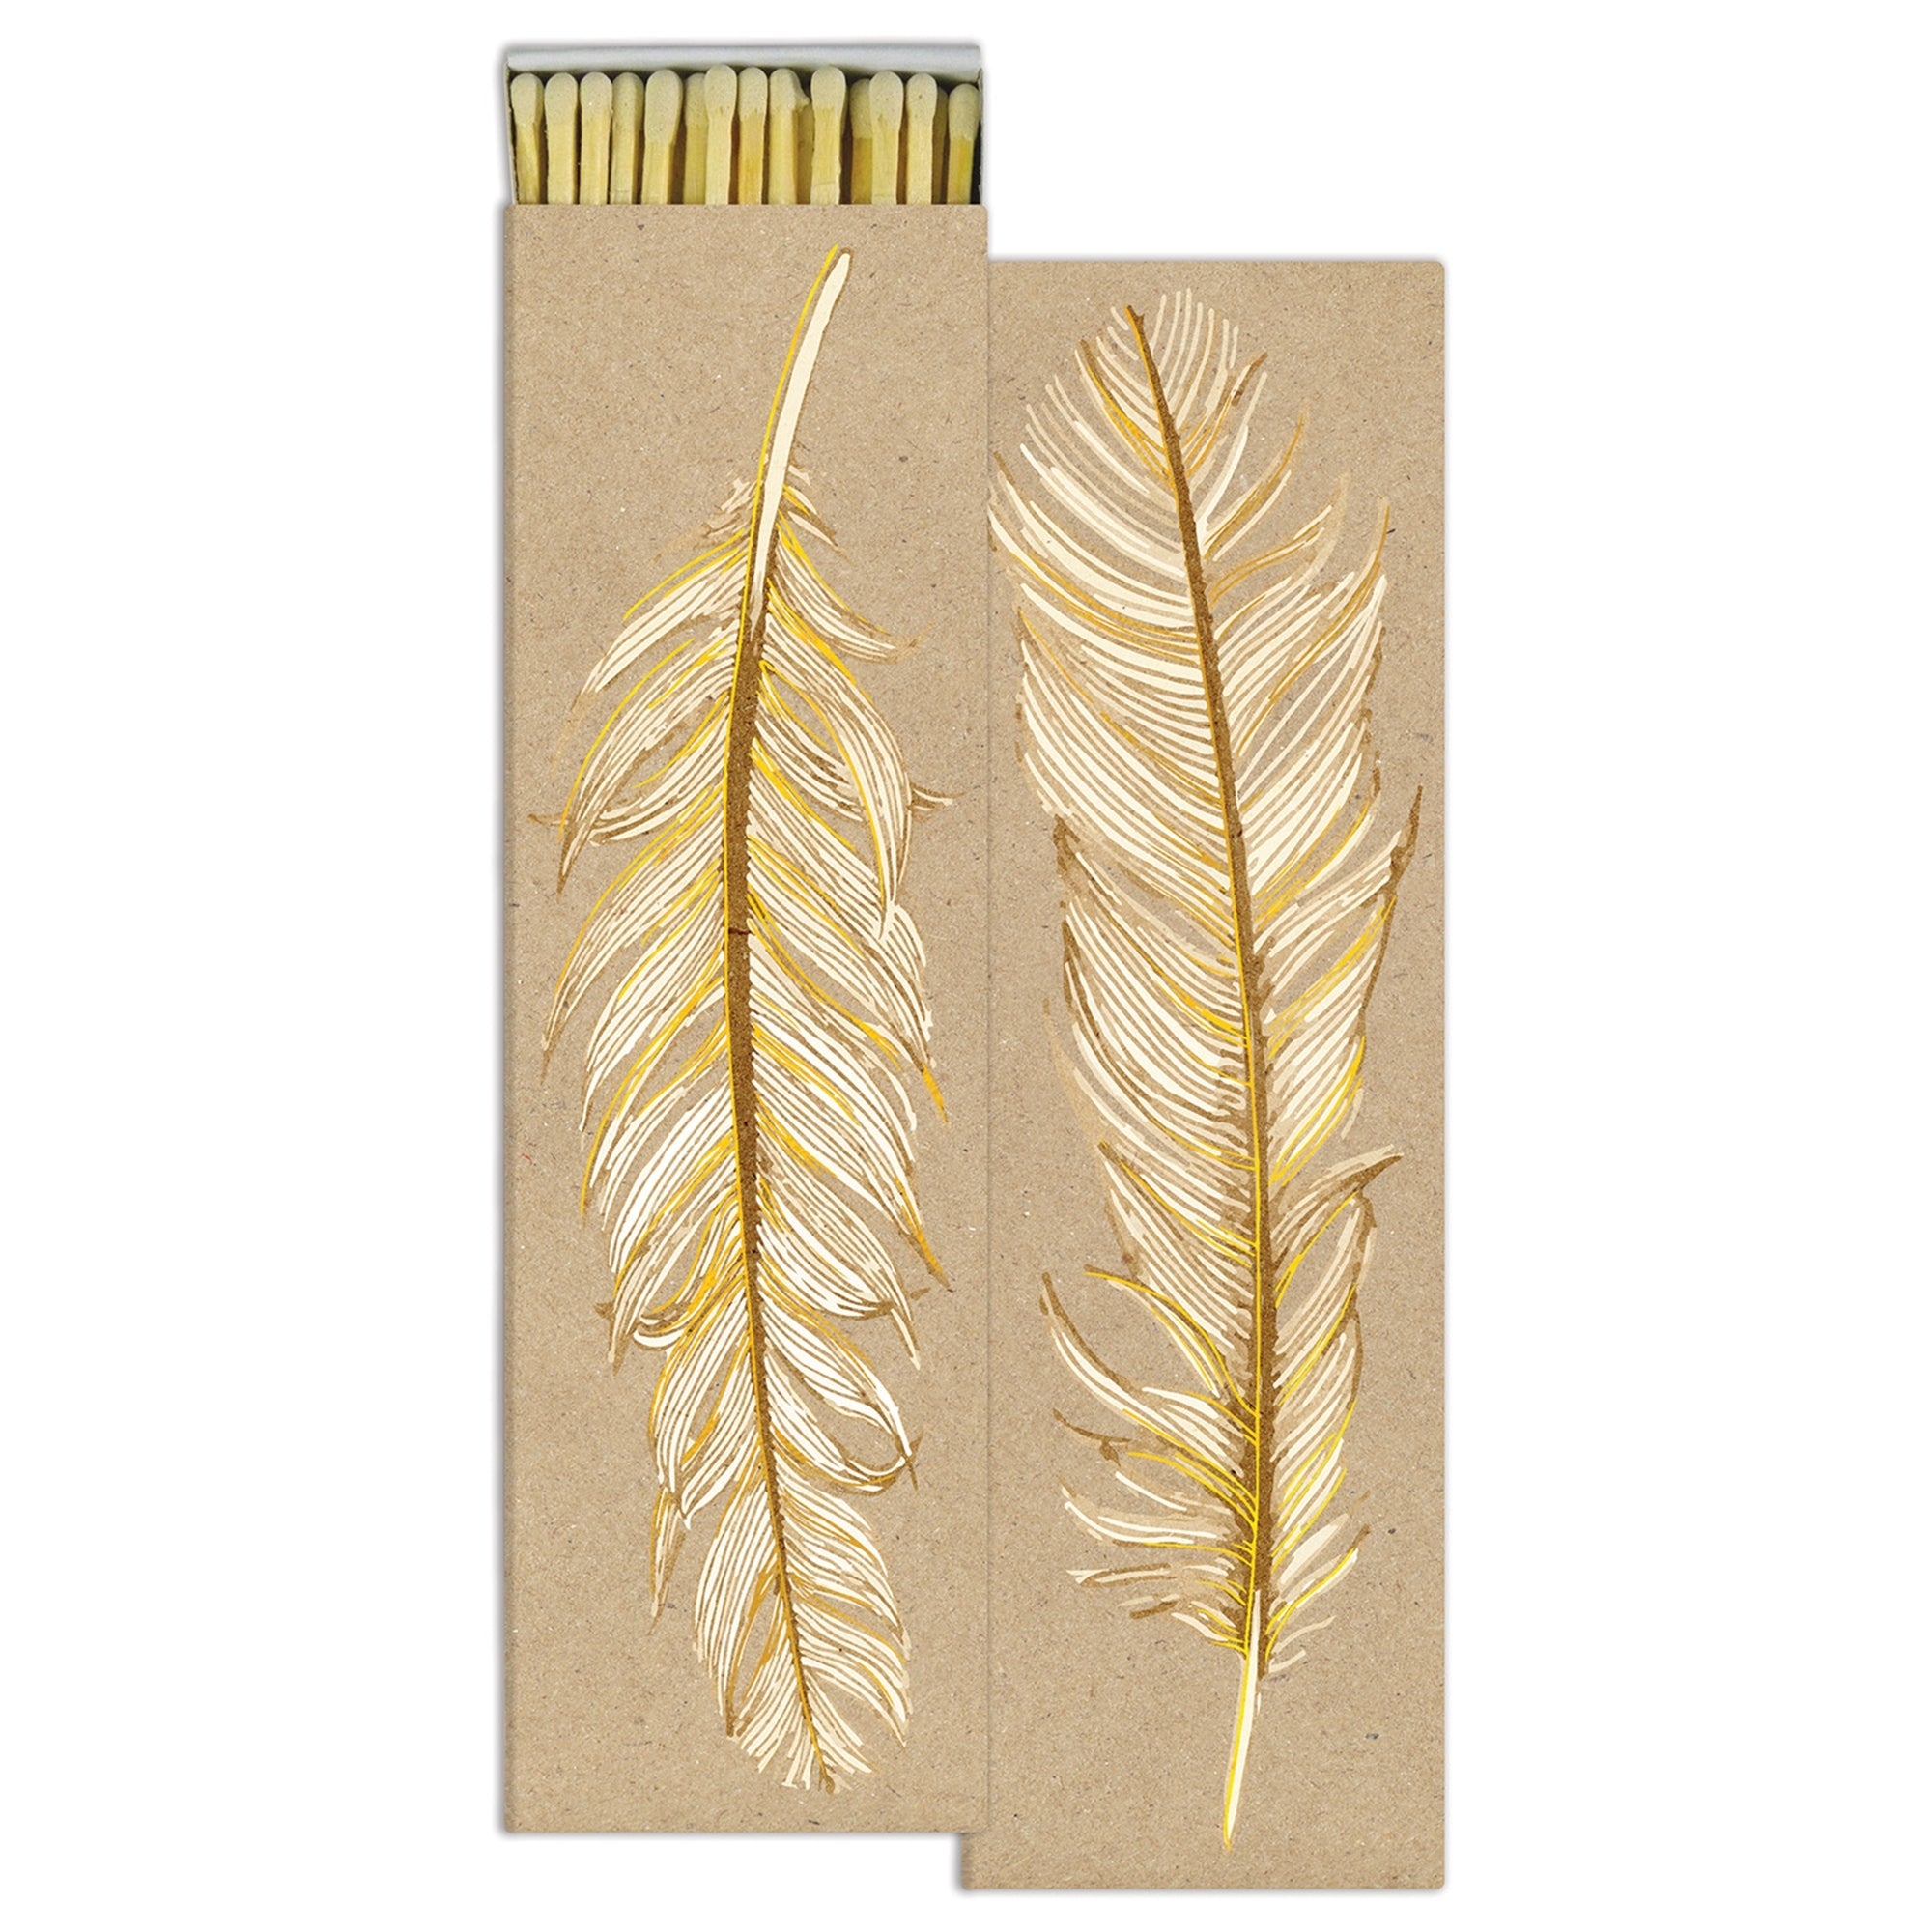 Long Matches - Ruffled Feather - Gold Foil - White